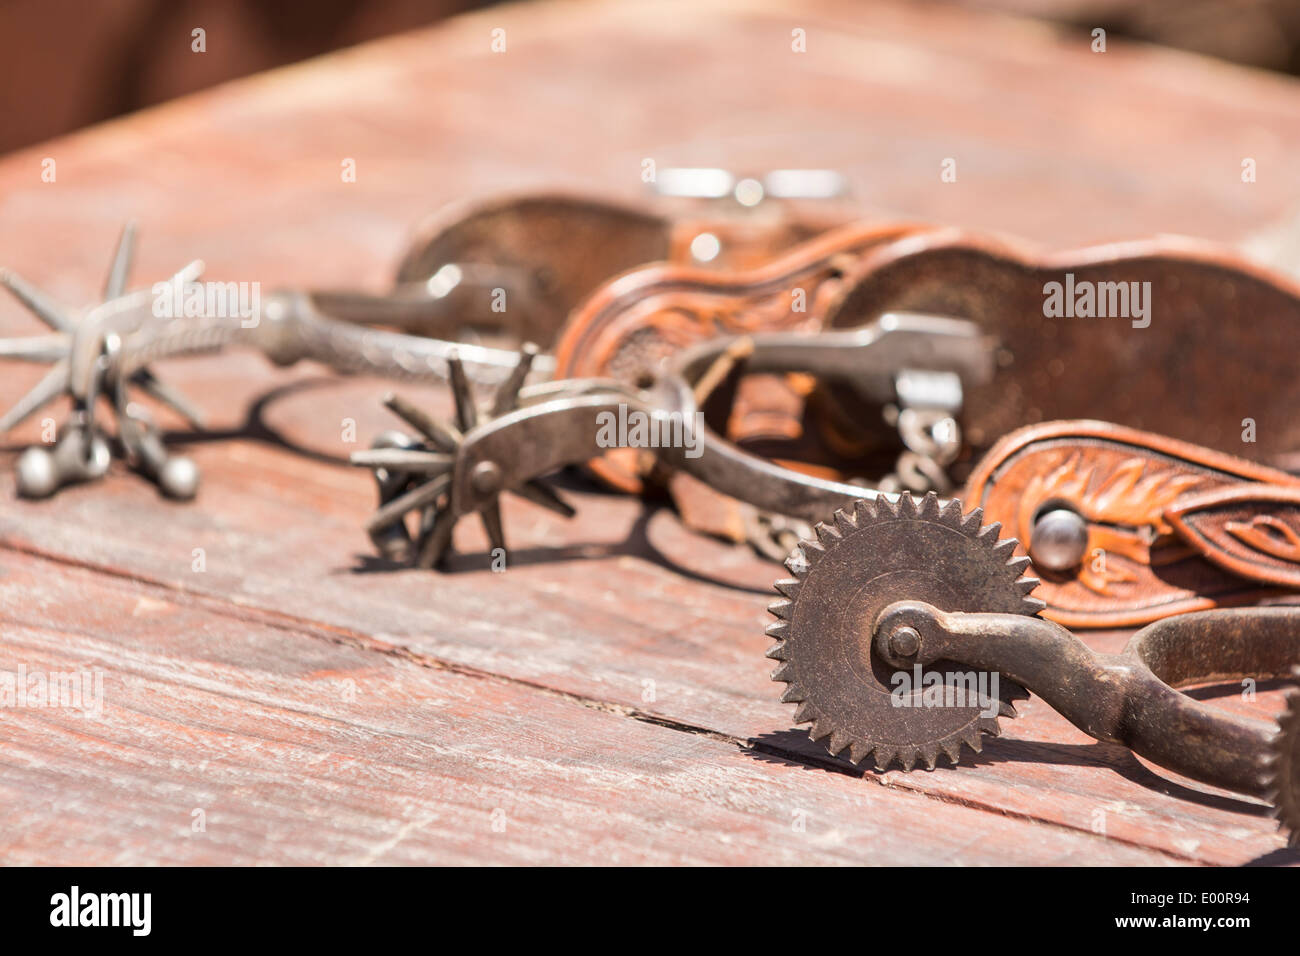 Three western boot spurs laying on a table - Stock Image